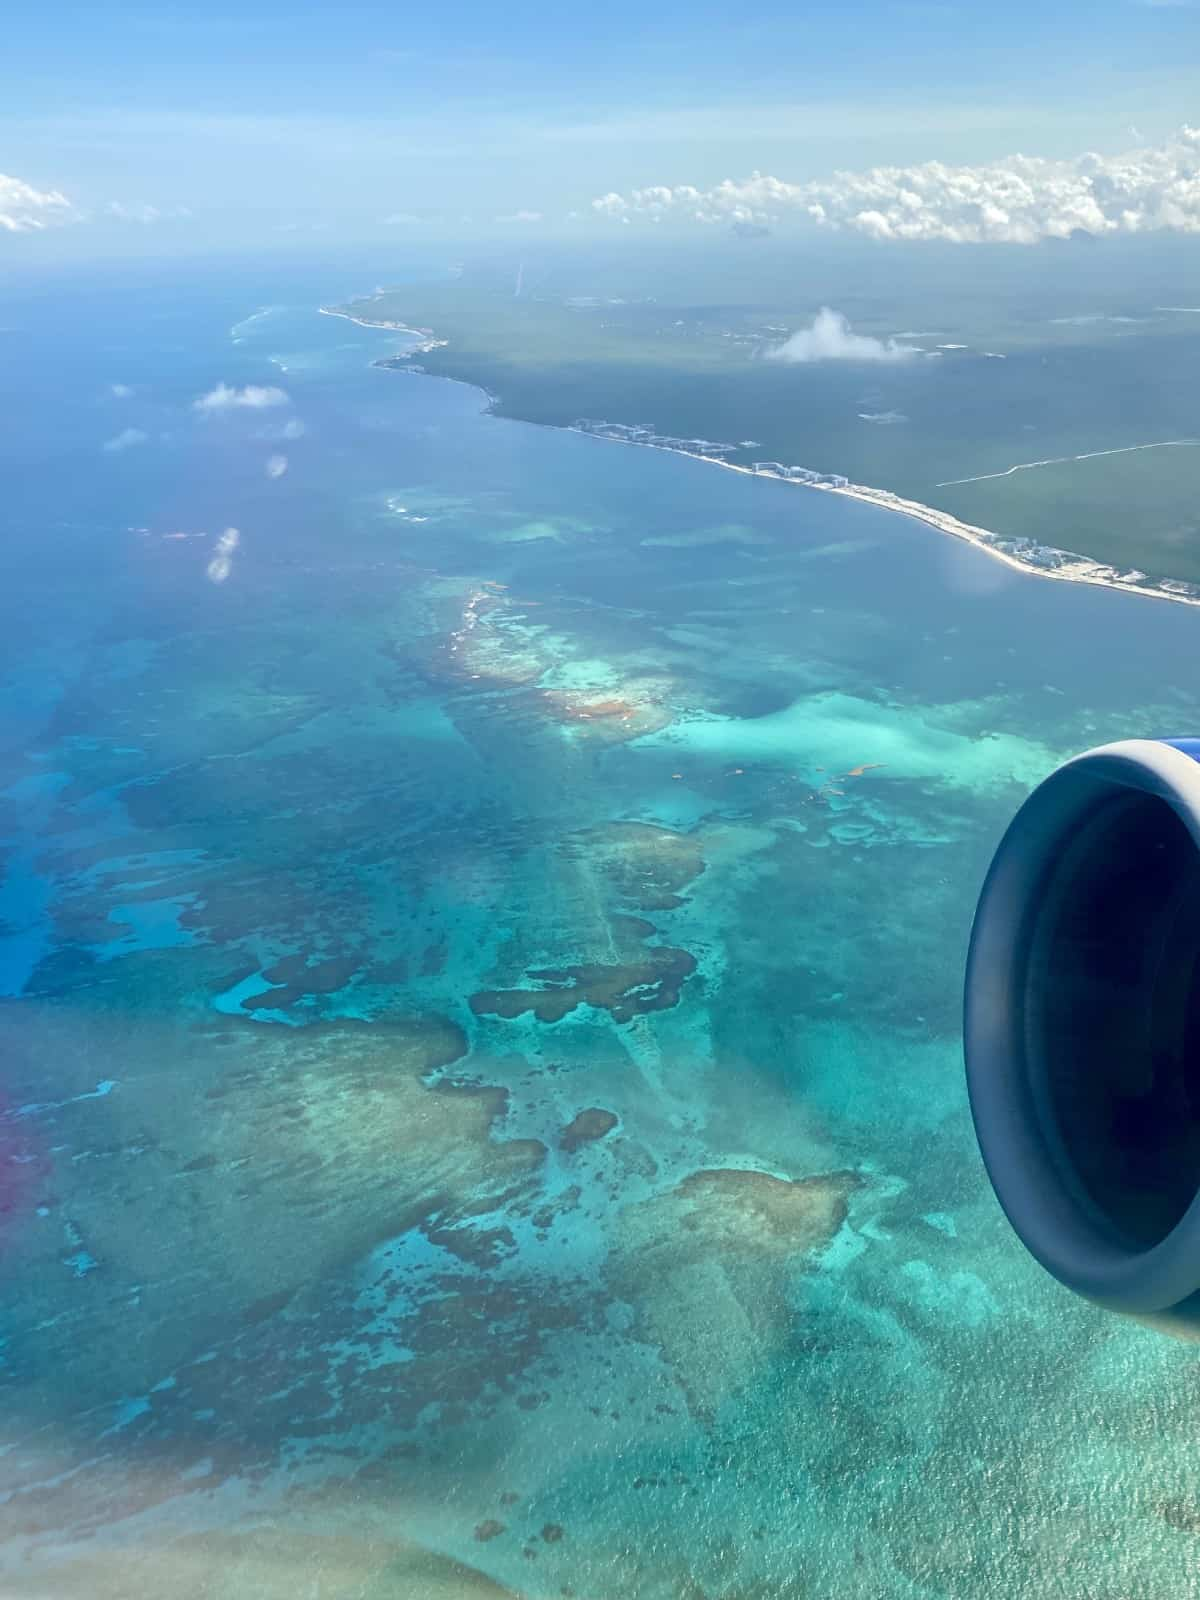 View from the plane while leaving Cancun